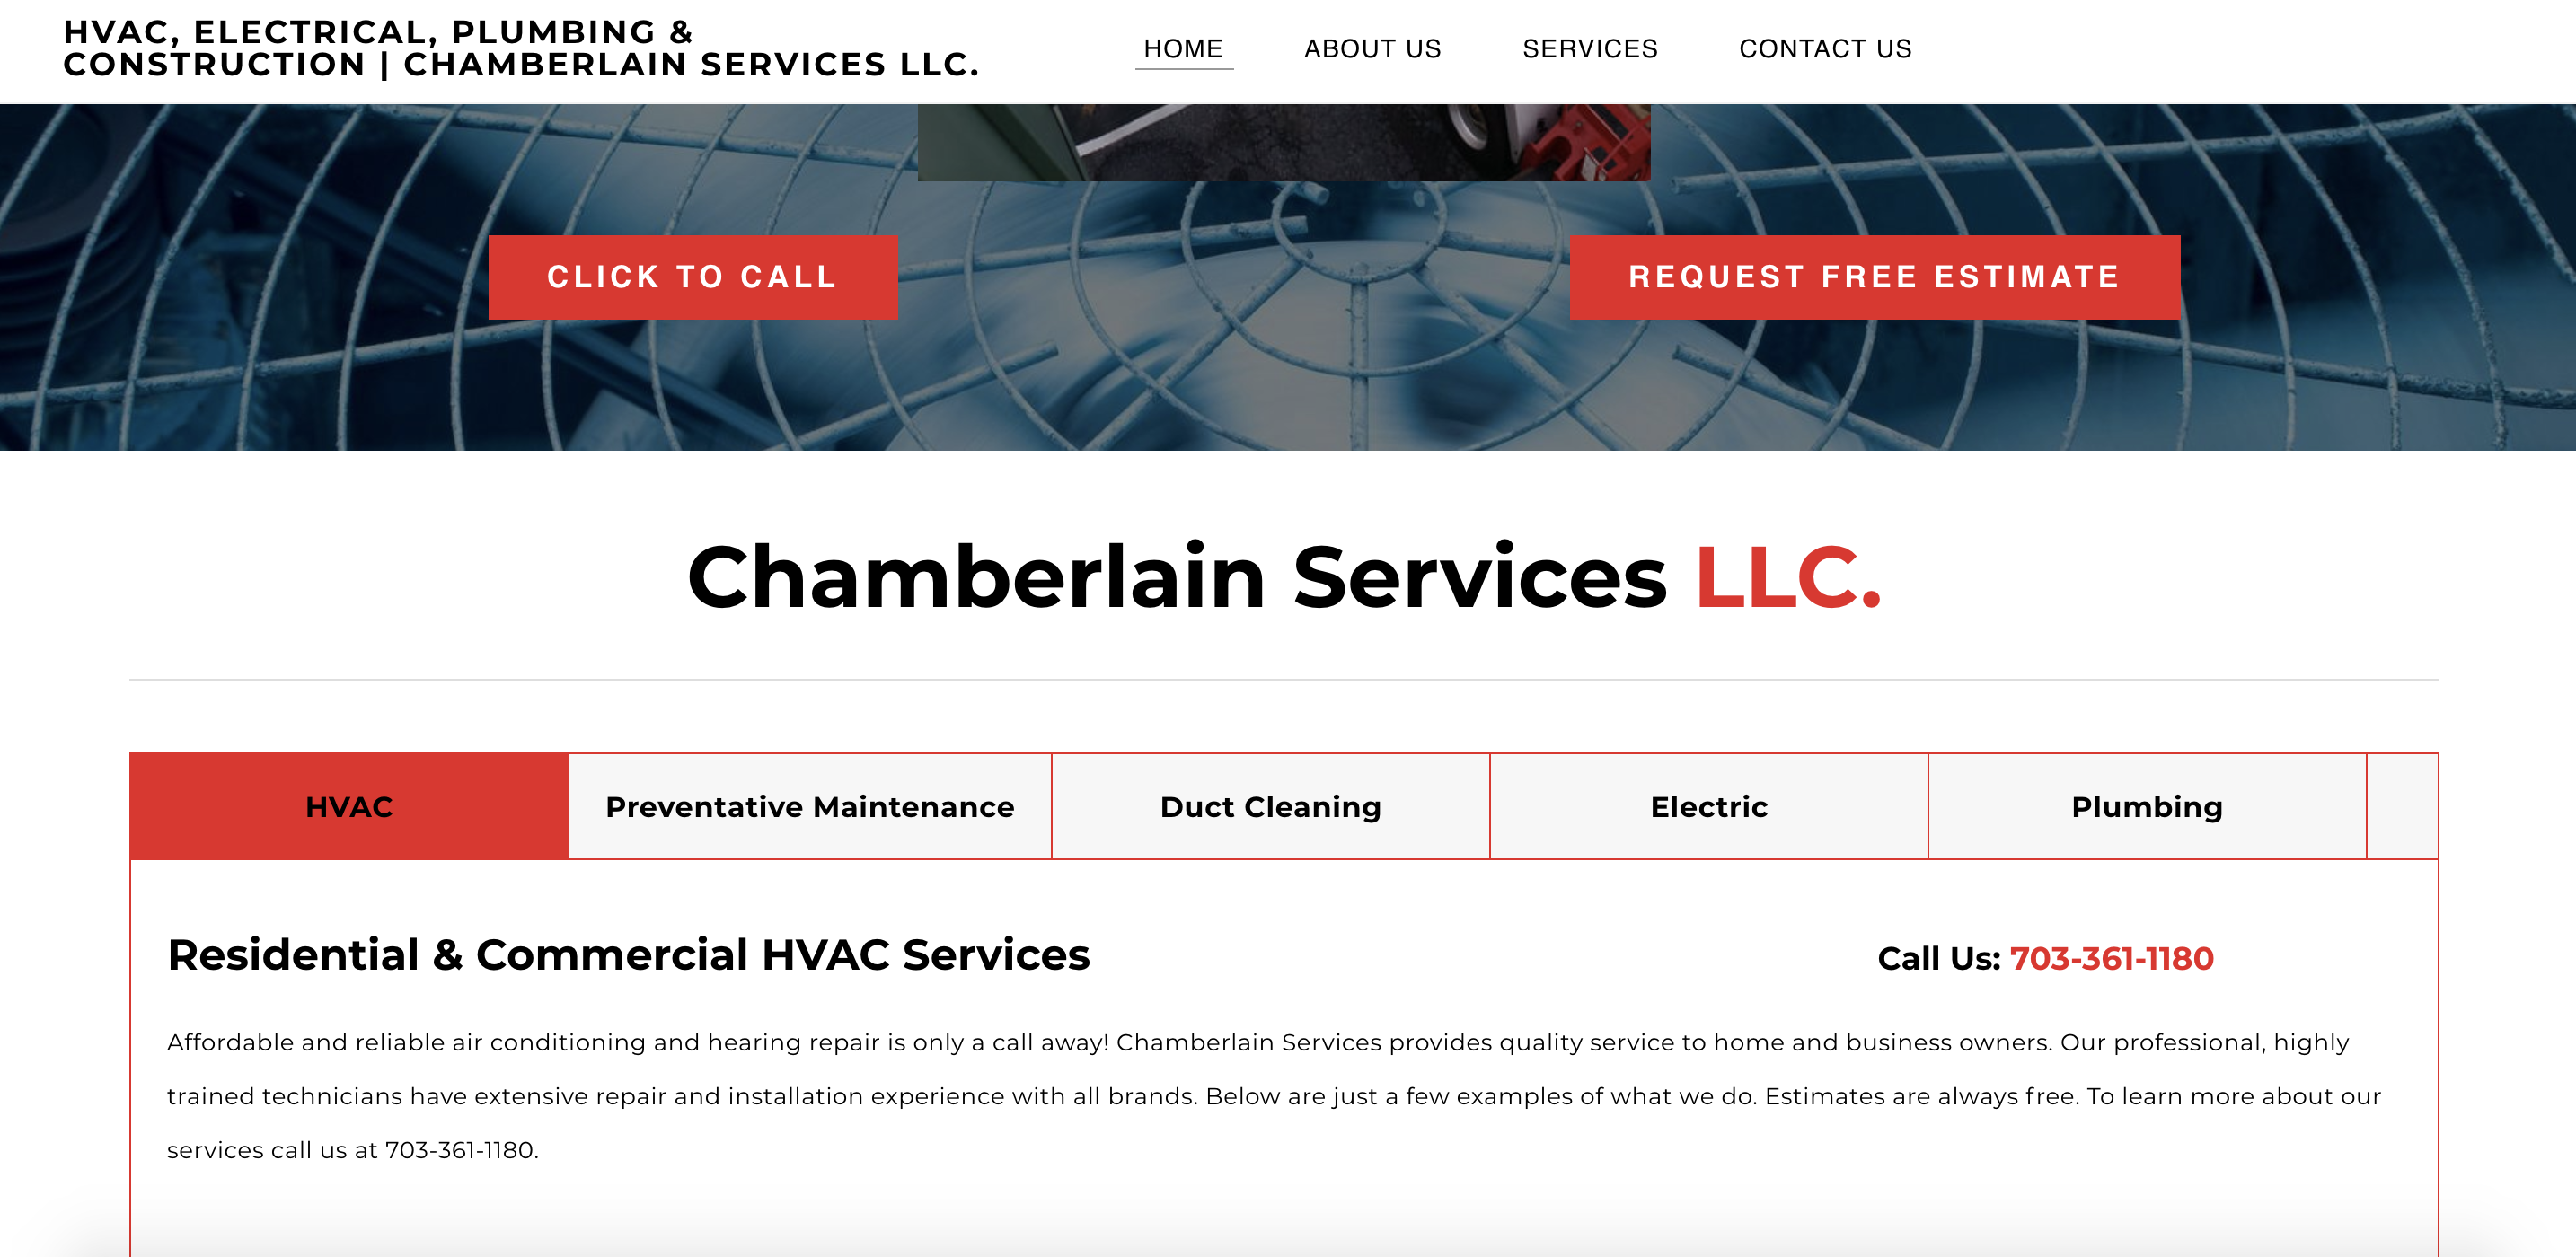 Our Work - Chamberlain Services